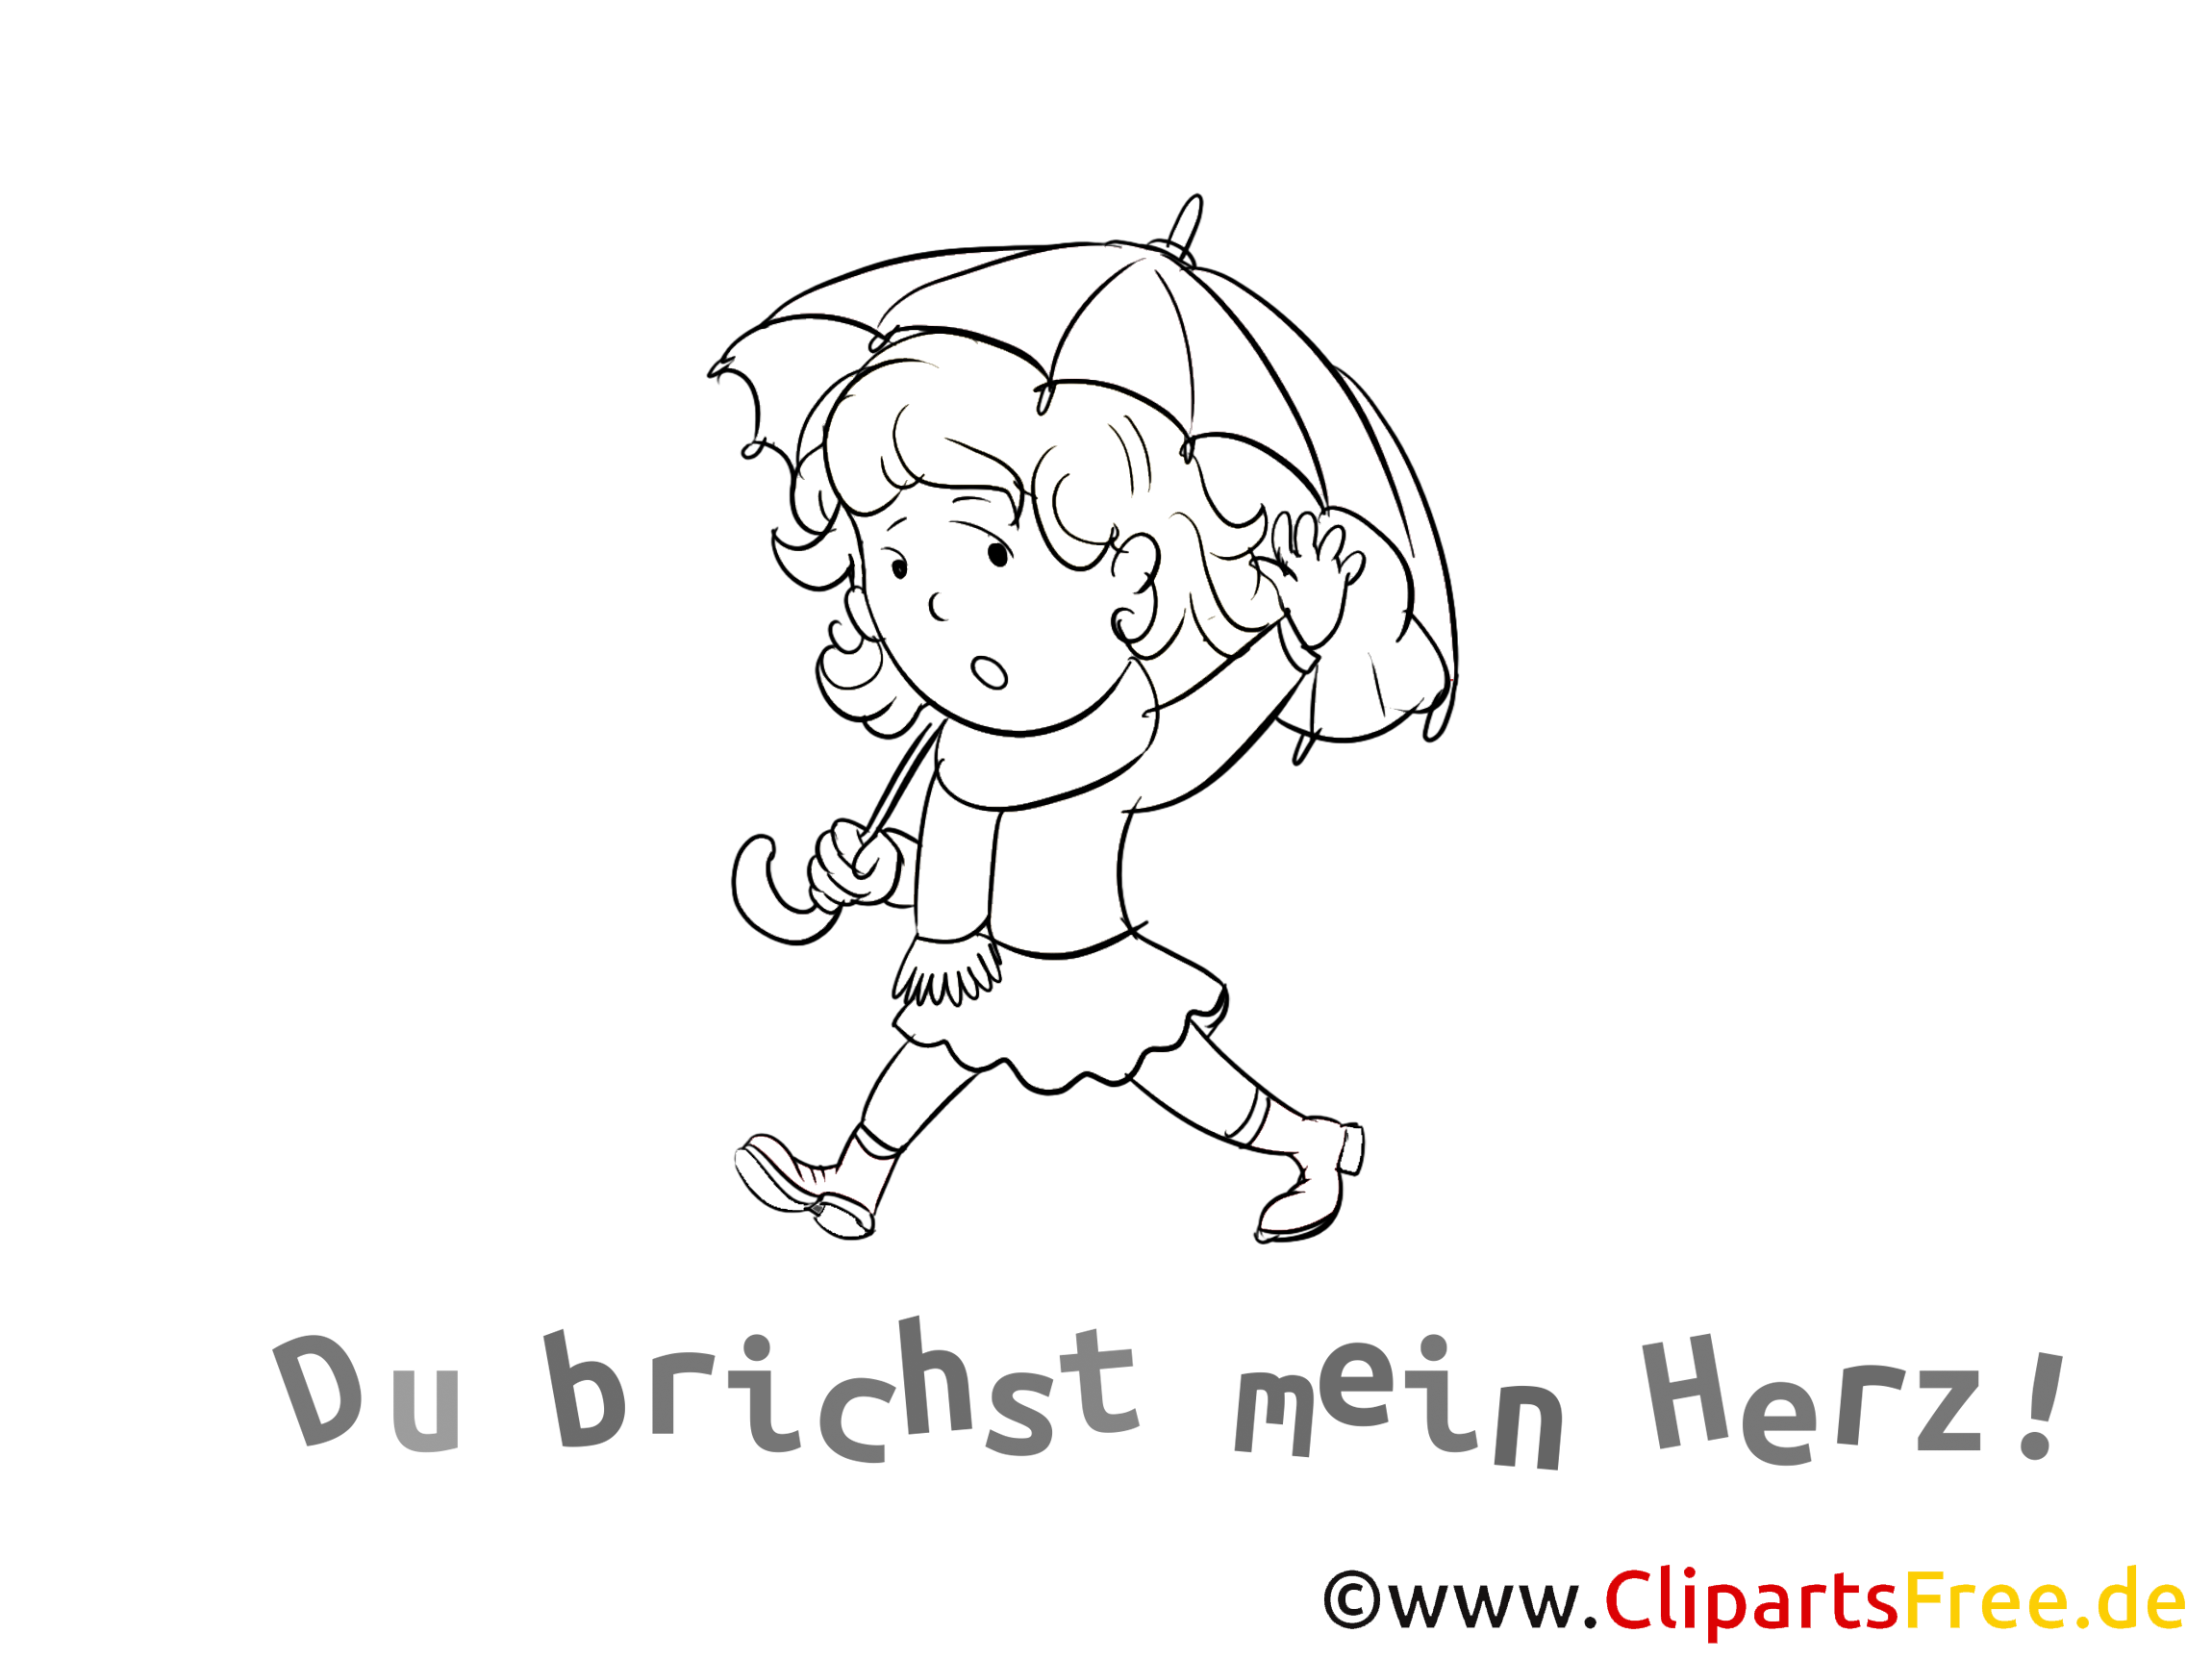 Du brichst mein Herz Karte, Grafik, Clipart, Cartoon